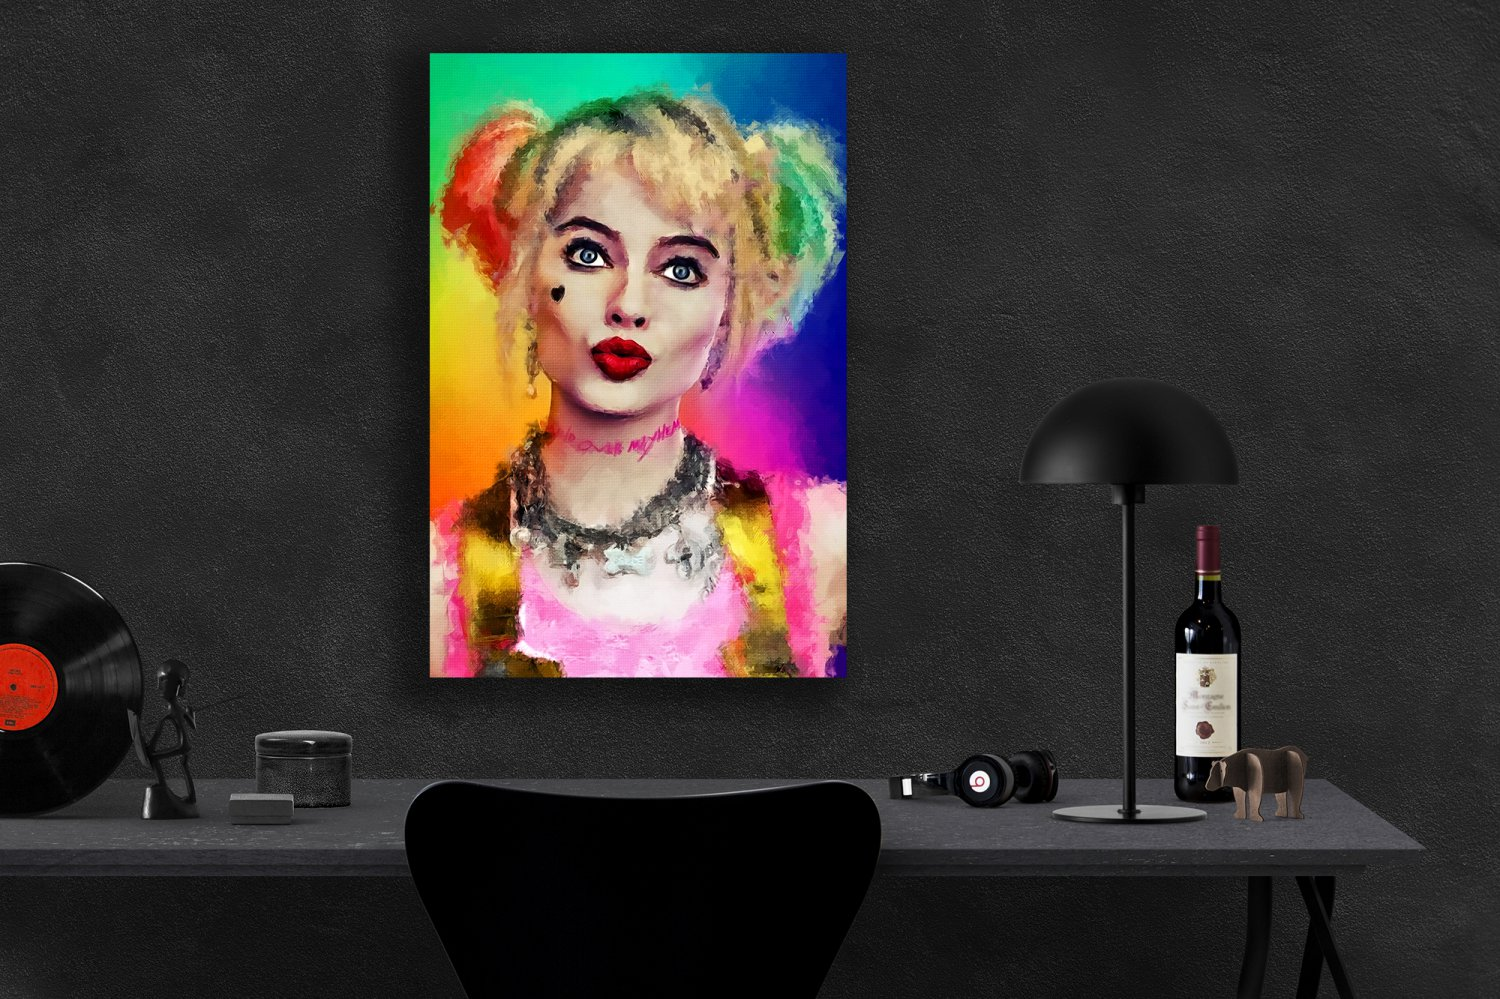 Birds of Prey, Harley Quinn, Margot Robbie  18x28 inches Canvas Print